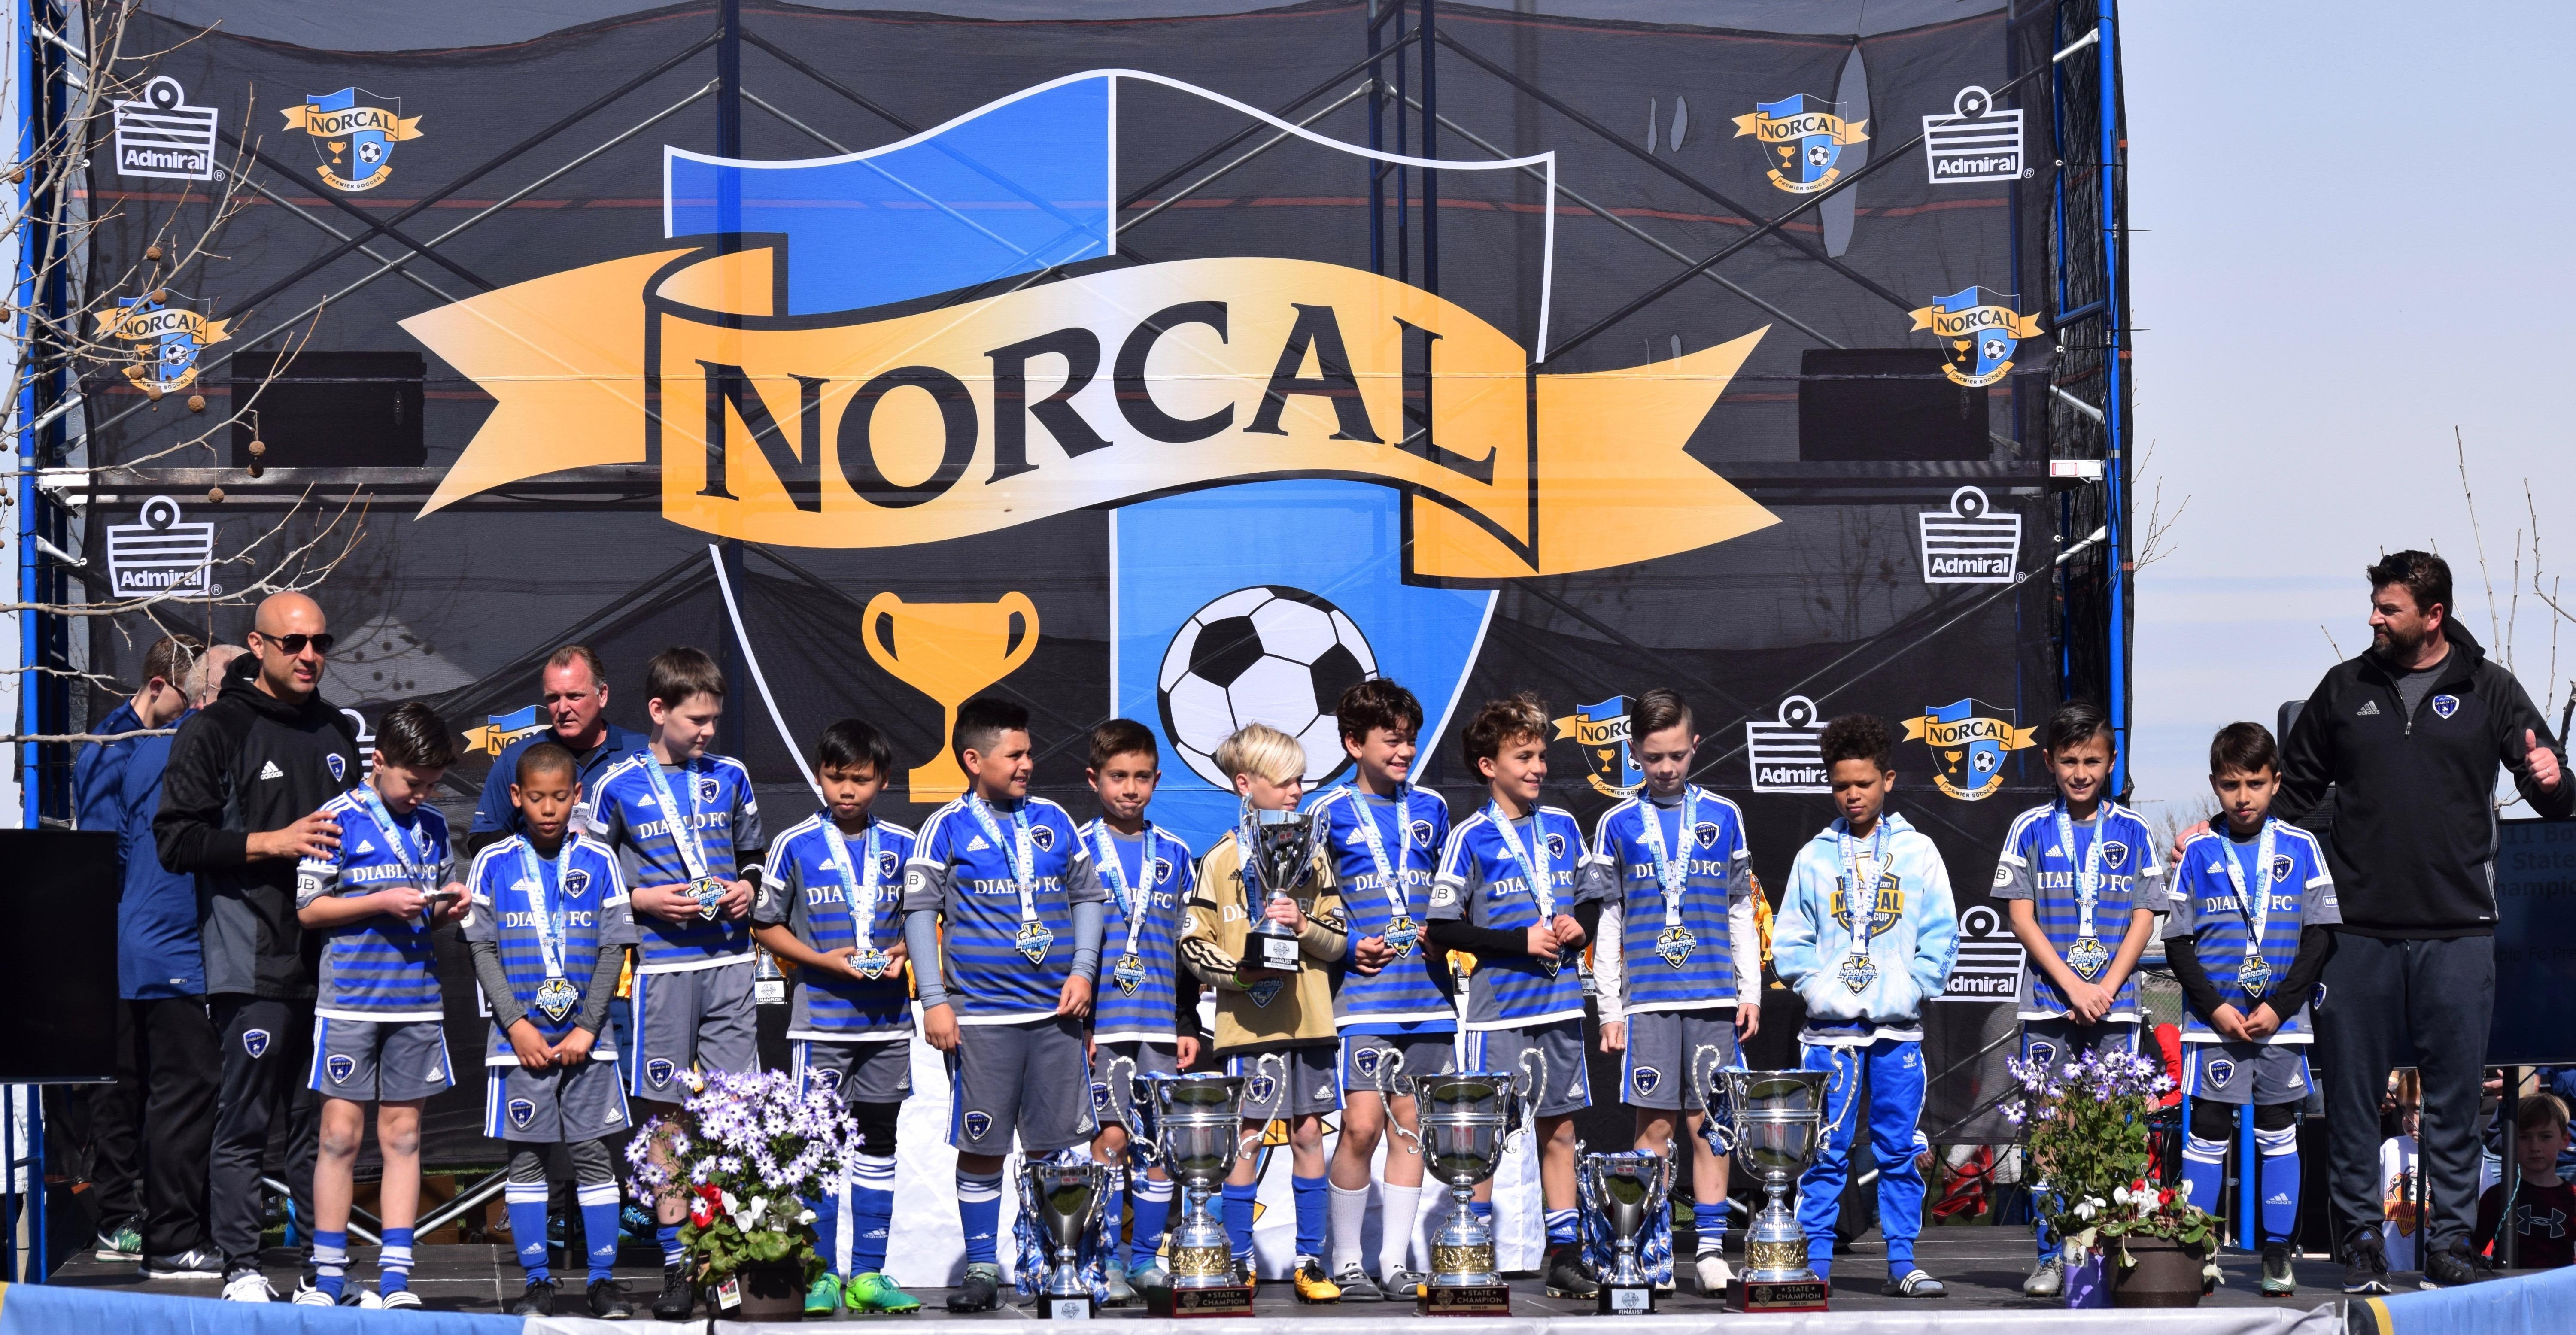 '07 Boys finish 2nd out of all teams in NorCal State Cup